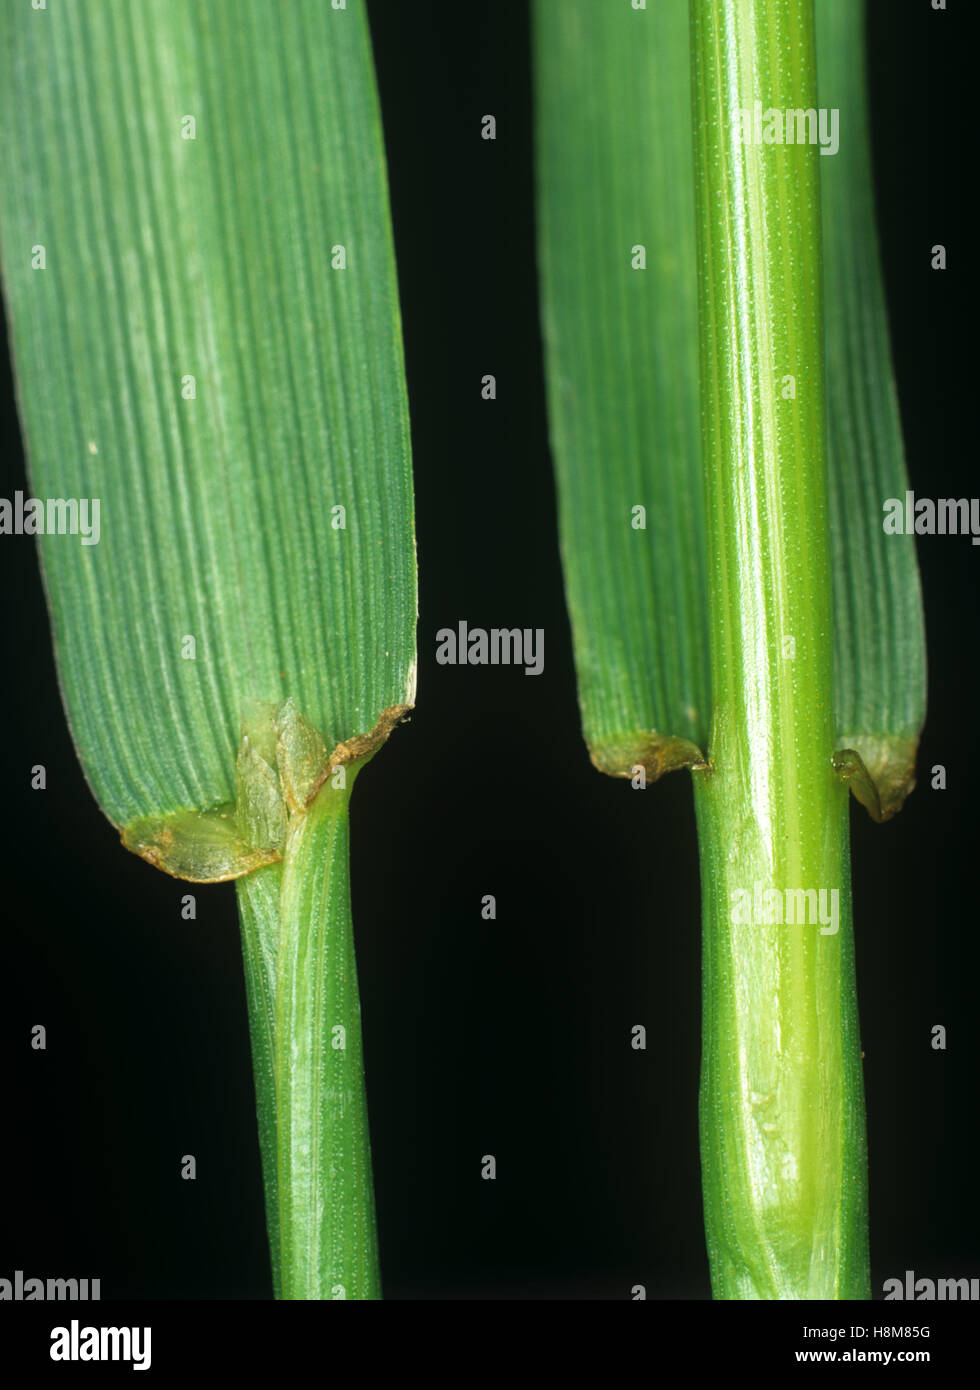 Perennial ryegrass, Lolium perenne, leaf ligule at the node and leafstalk of an agricultural grass - Stock Image